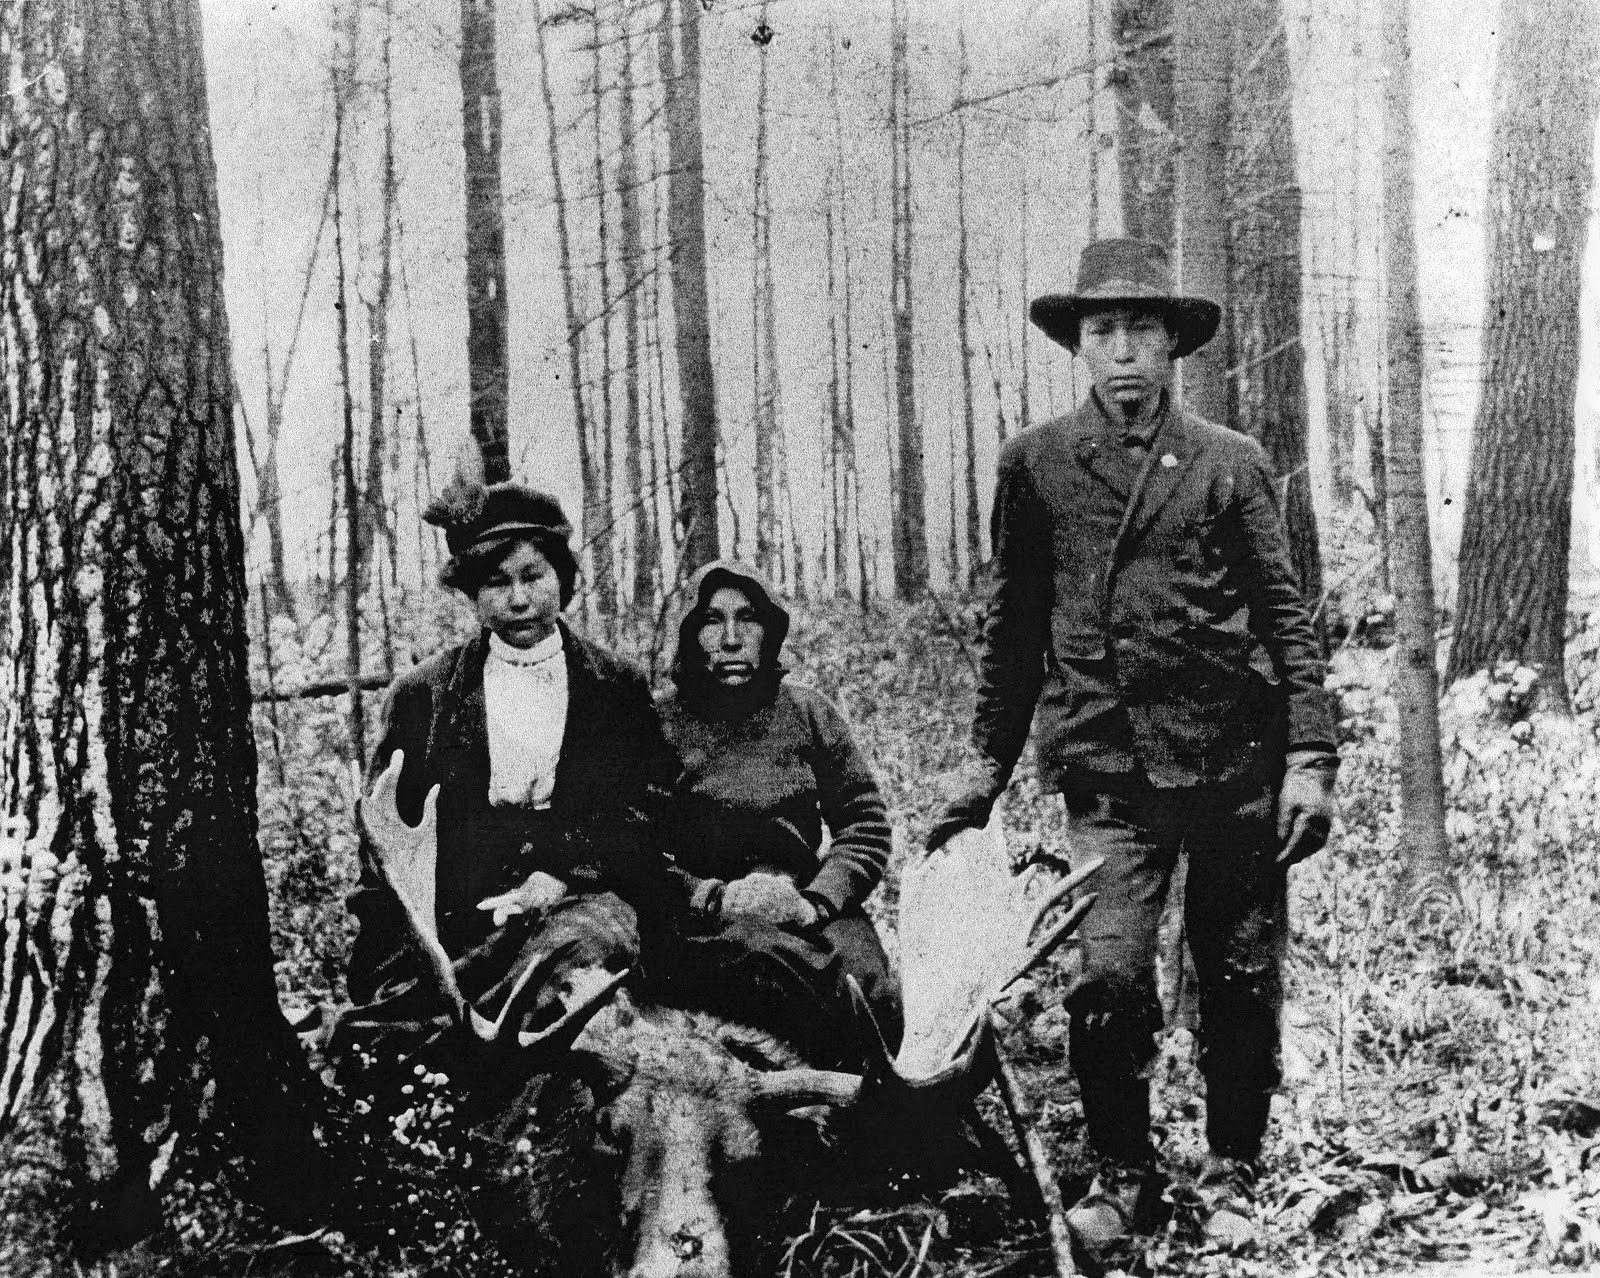 Photo: After Espagnol died in 1907, his daughter, Maggie, and her stepmother, Sarah (Louis' third wife), remained living on the island where the former trading post was located and it became known as 'Maggie's Island'. The third person is John Espagnol, Maggie's brother. (Archives of Ontario)